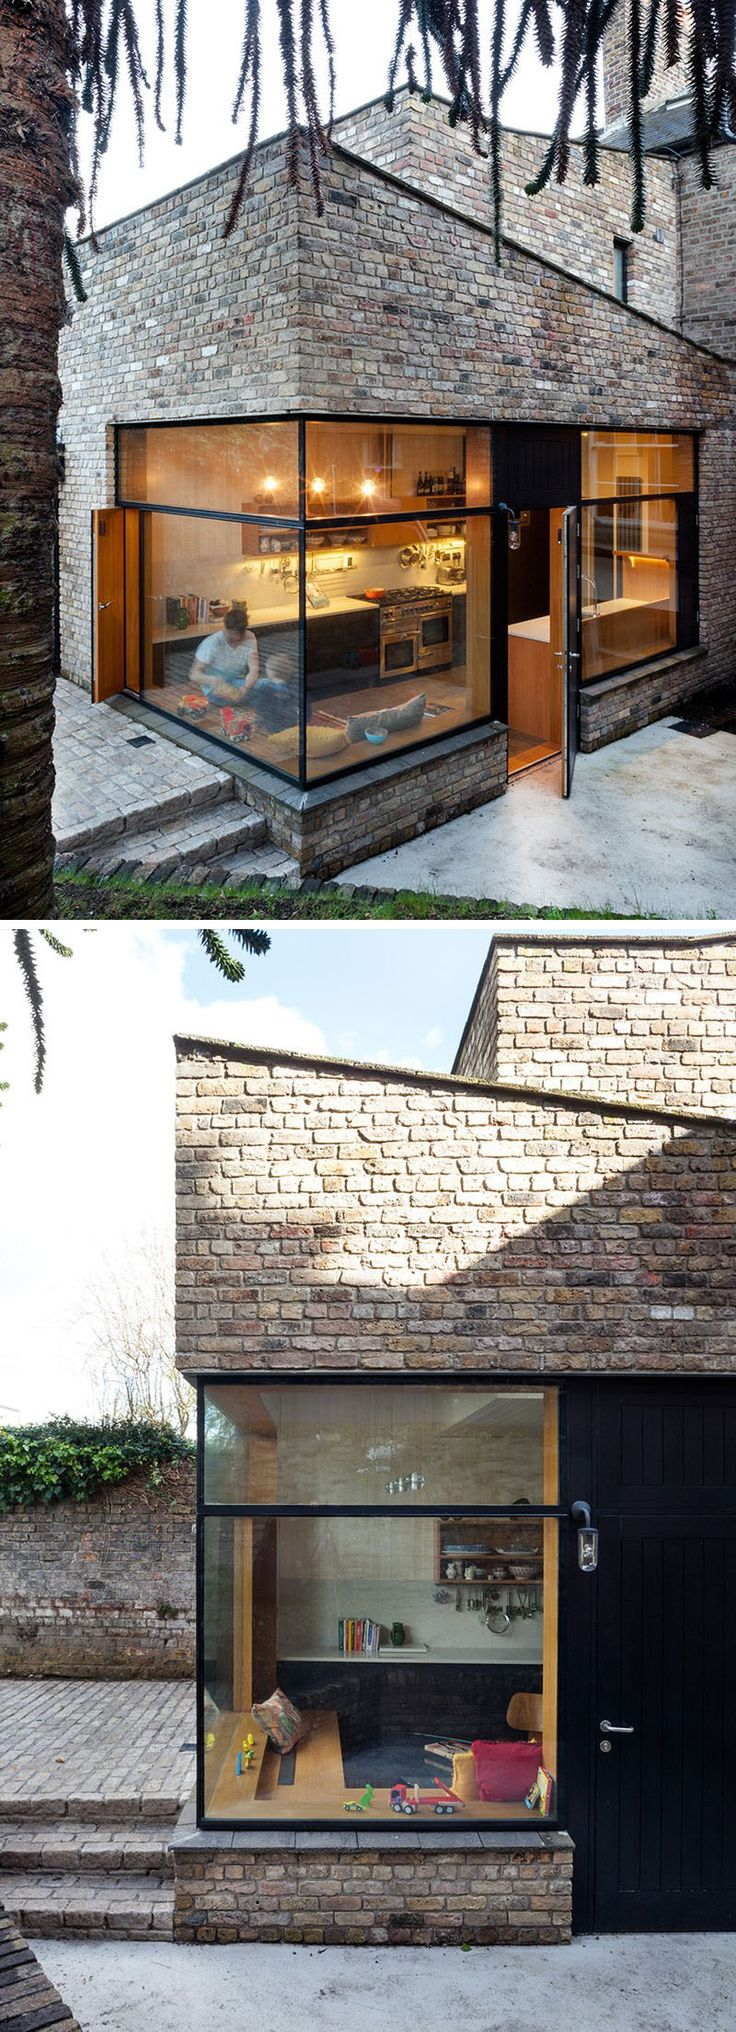 14 Modern Houses Made Of Brick | This brick extension matches the rest of the brick exterior and features large windows to maximize the amount of natural light in the home.